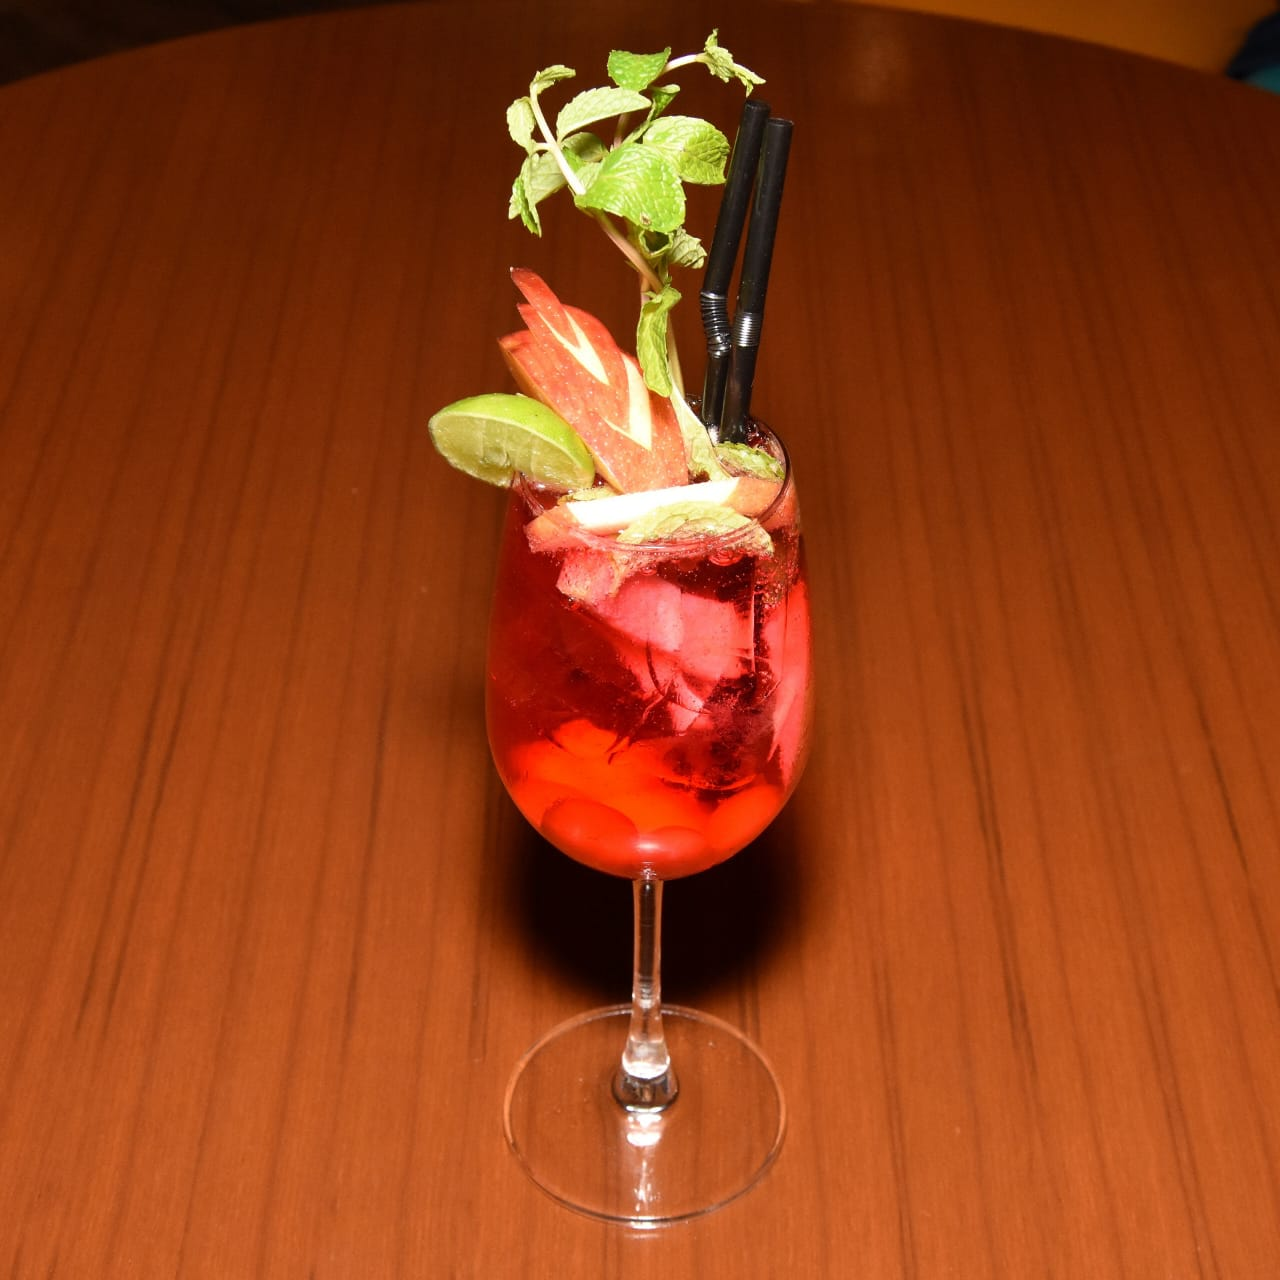 Celebrate the week of love with a special dessert and mocktail menu